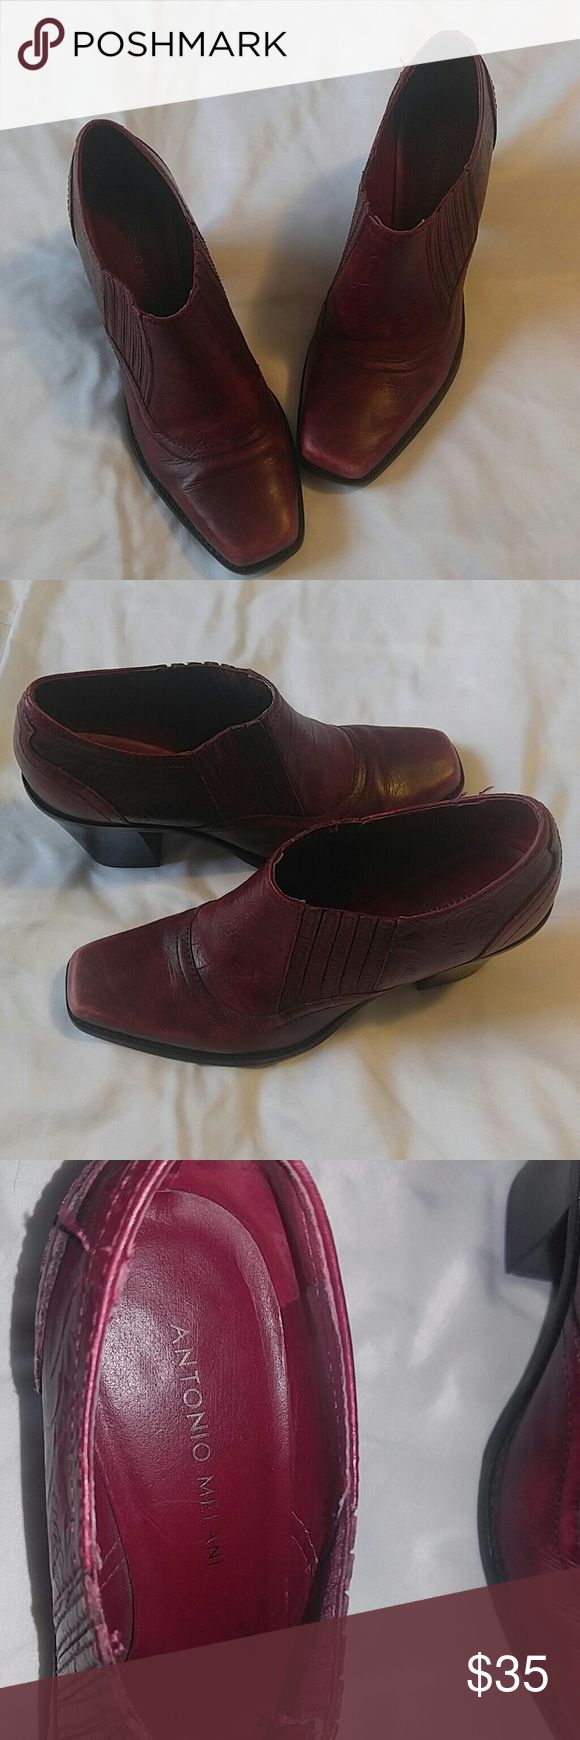 Antonio Melani leather ankle boots shoes Burgundy ankle boots hardly worn in size 6M ANTONIO MELANI Shoes Ankle Boots & Booties